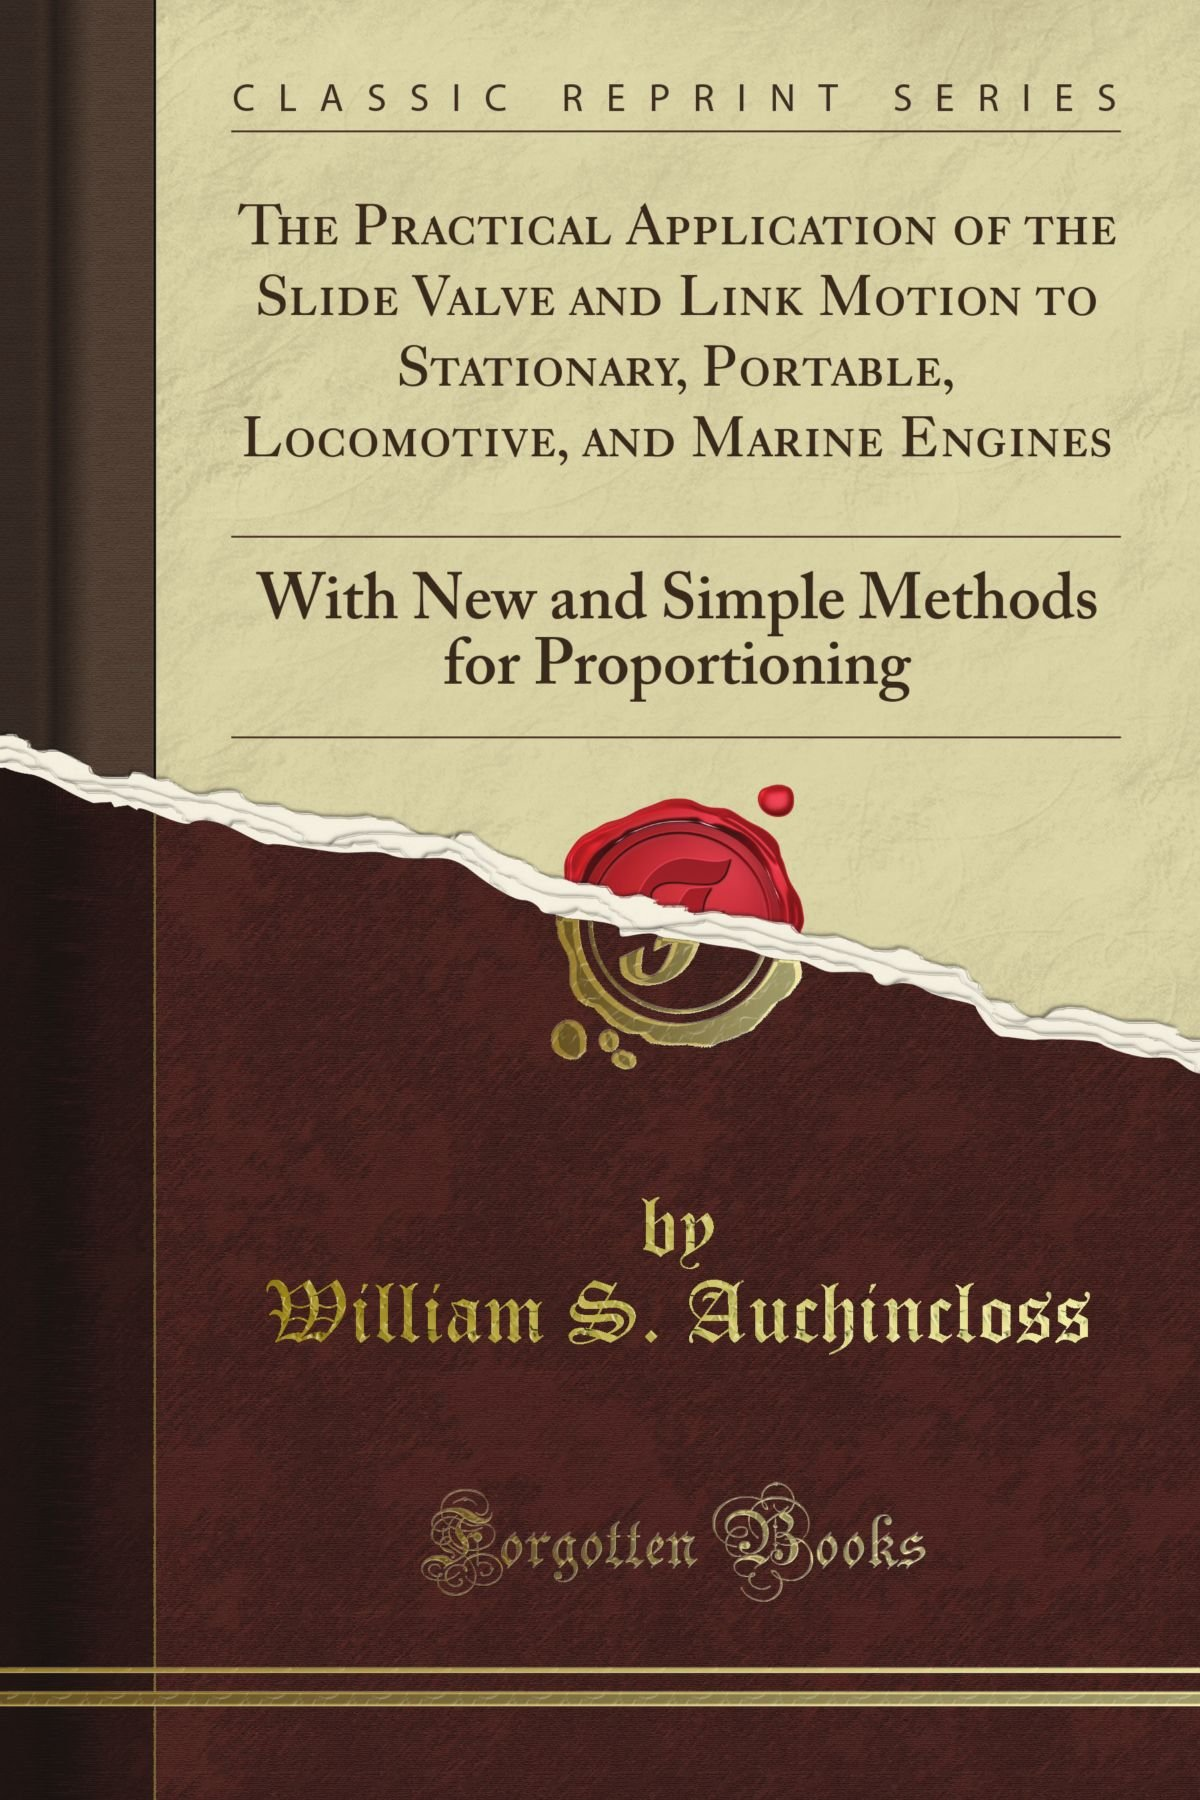 The Practical Application of the Slide Valve and Link Motion to Stationary, Portable, Locomotive, and Marine Engines: With New and Simple Methods for Proportioning (Classic Reprint)